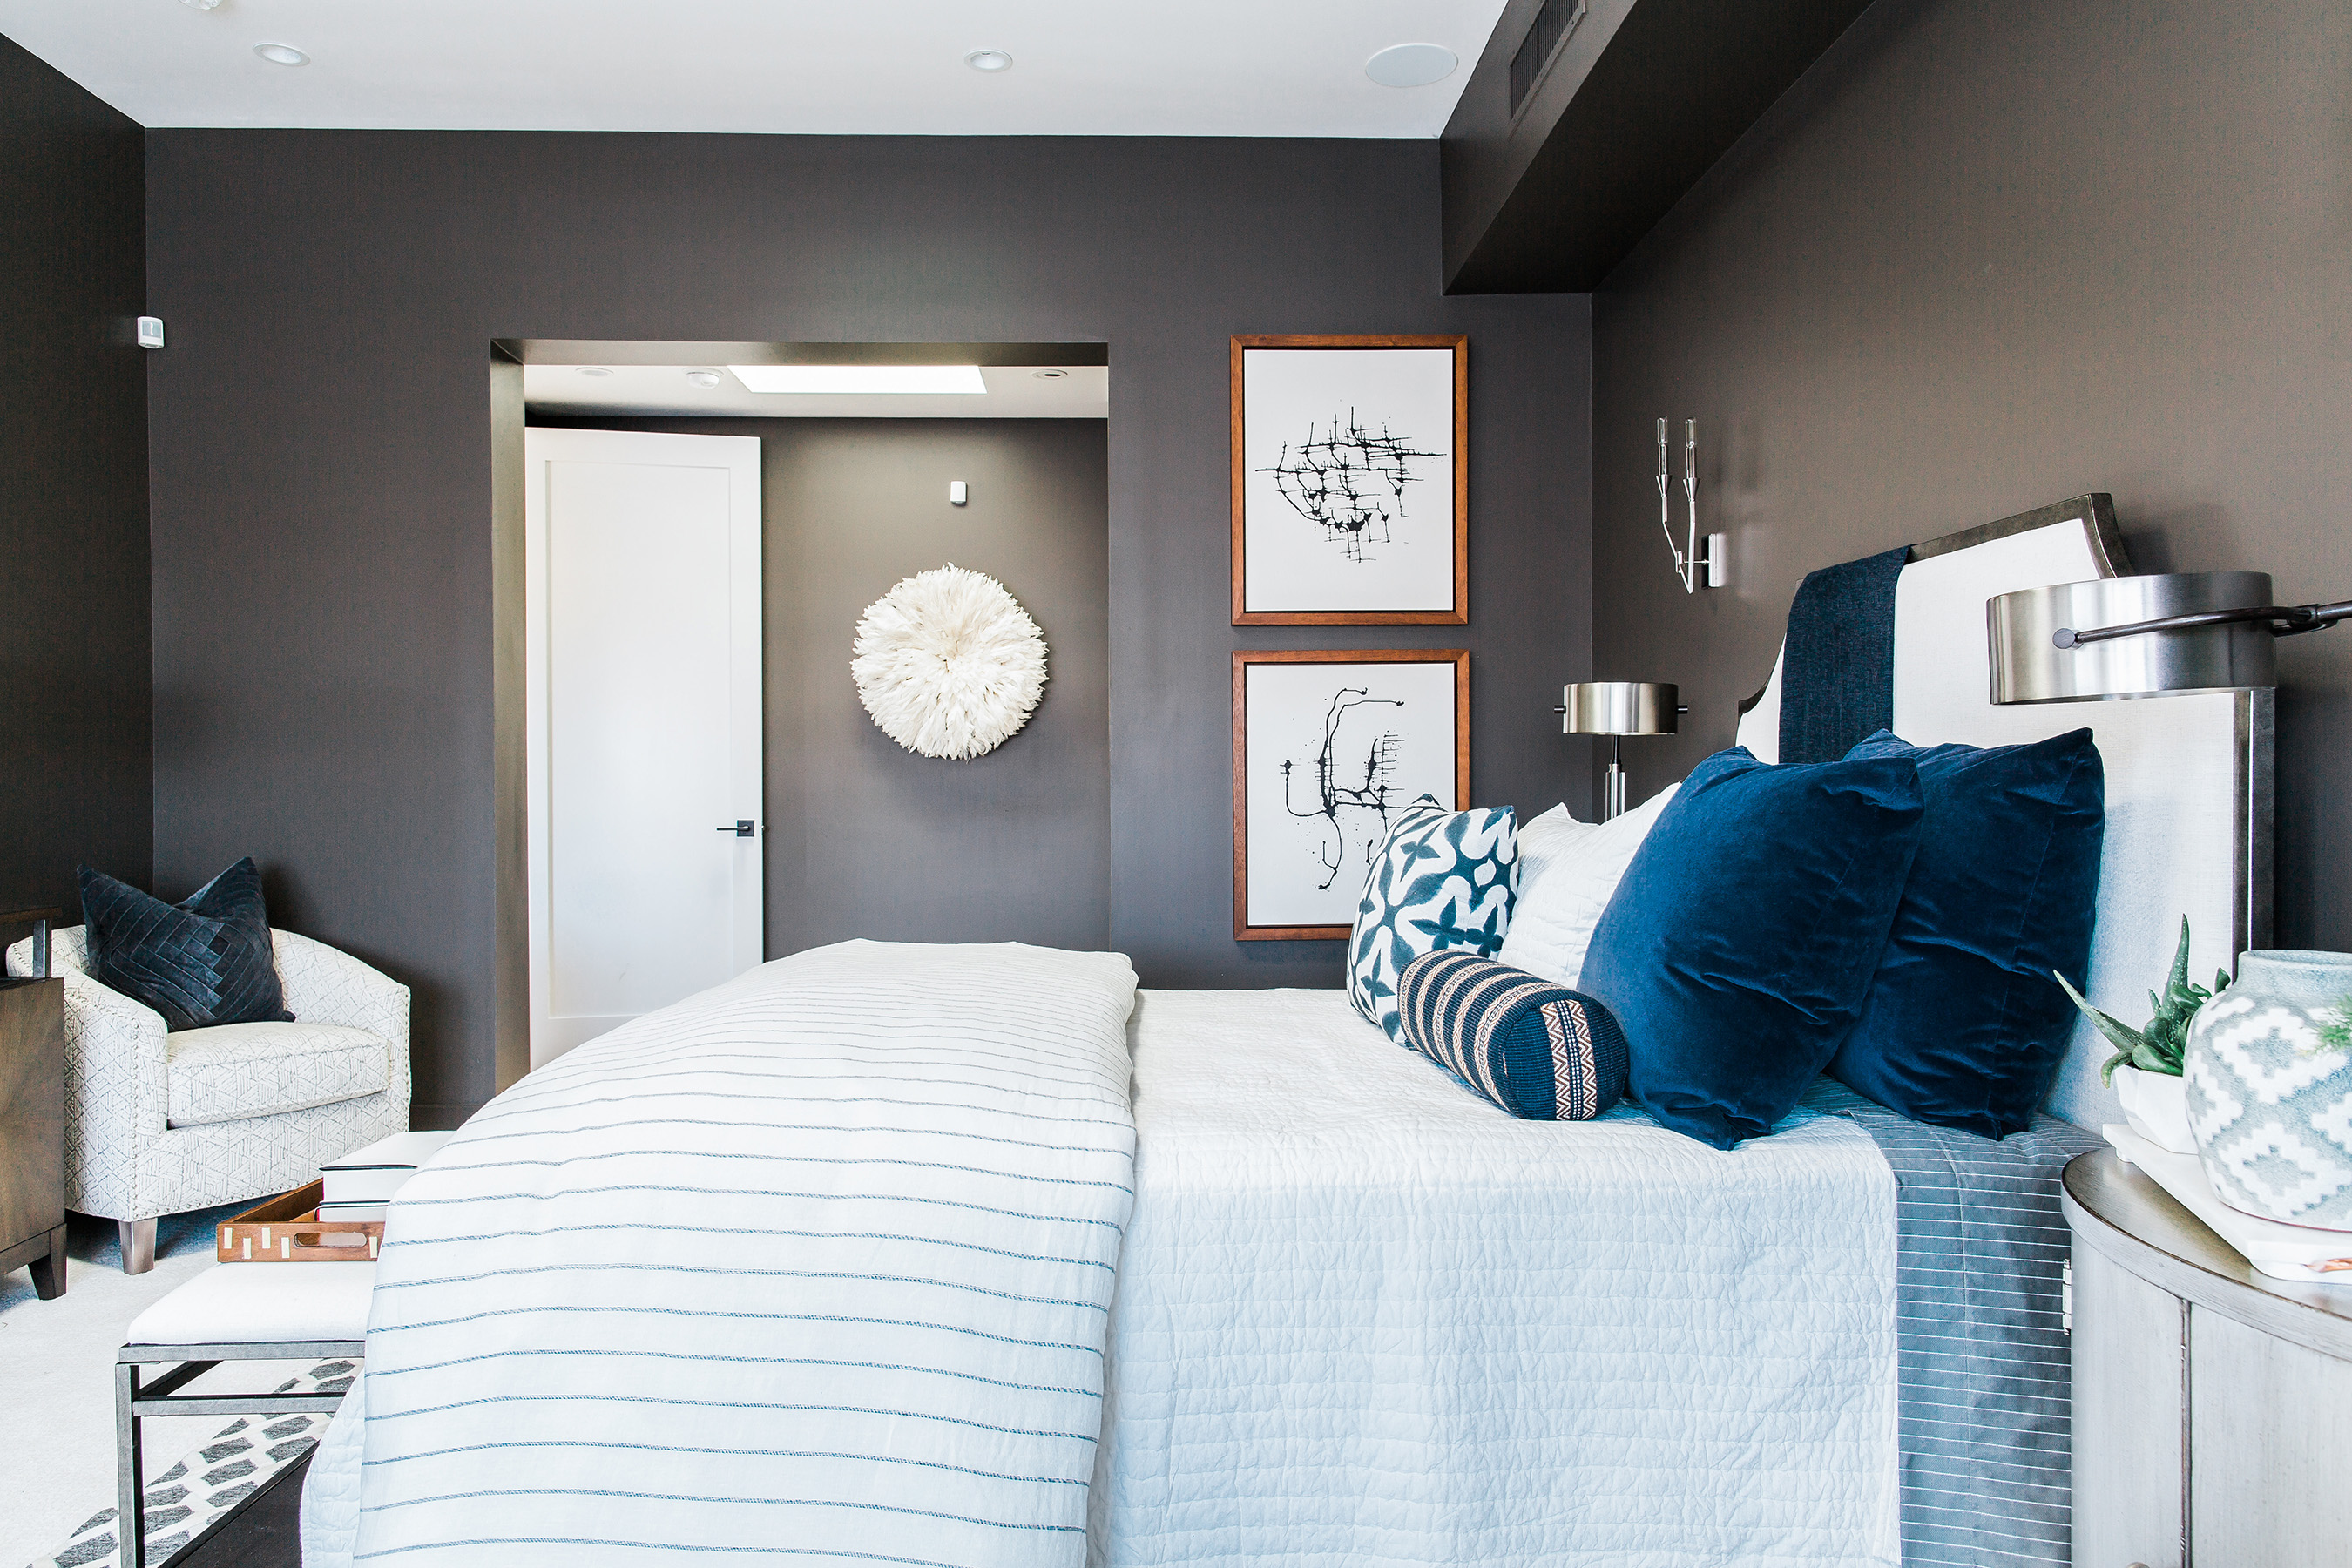 The Master Bedroom Of Hgtv Smart Home 2017 Is Wred In Warm Cozy Colors And